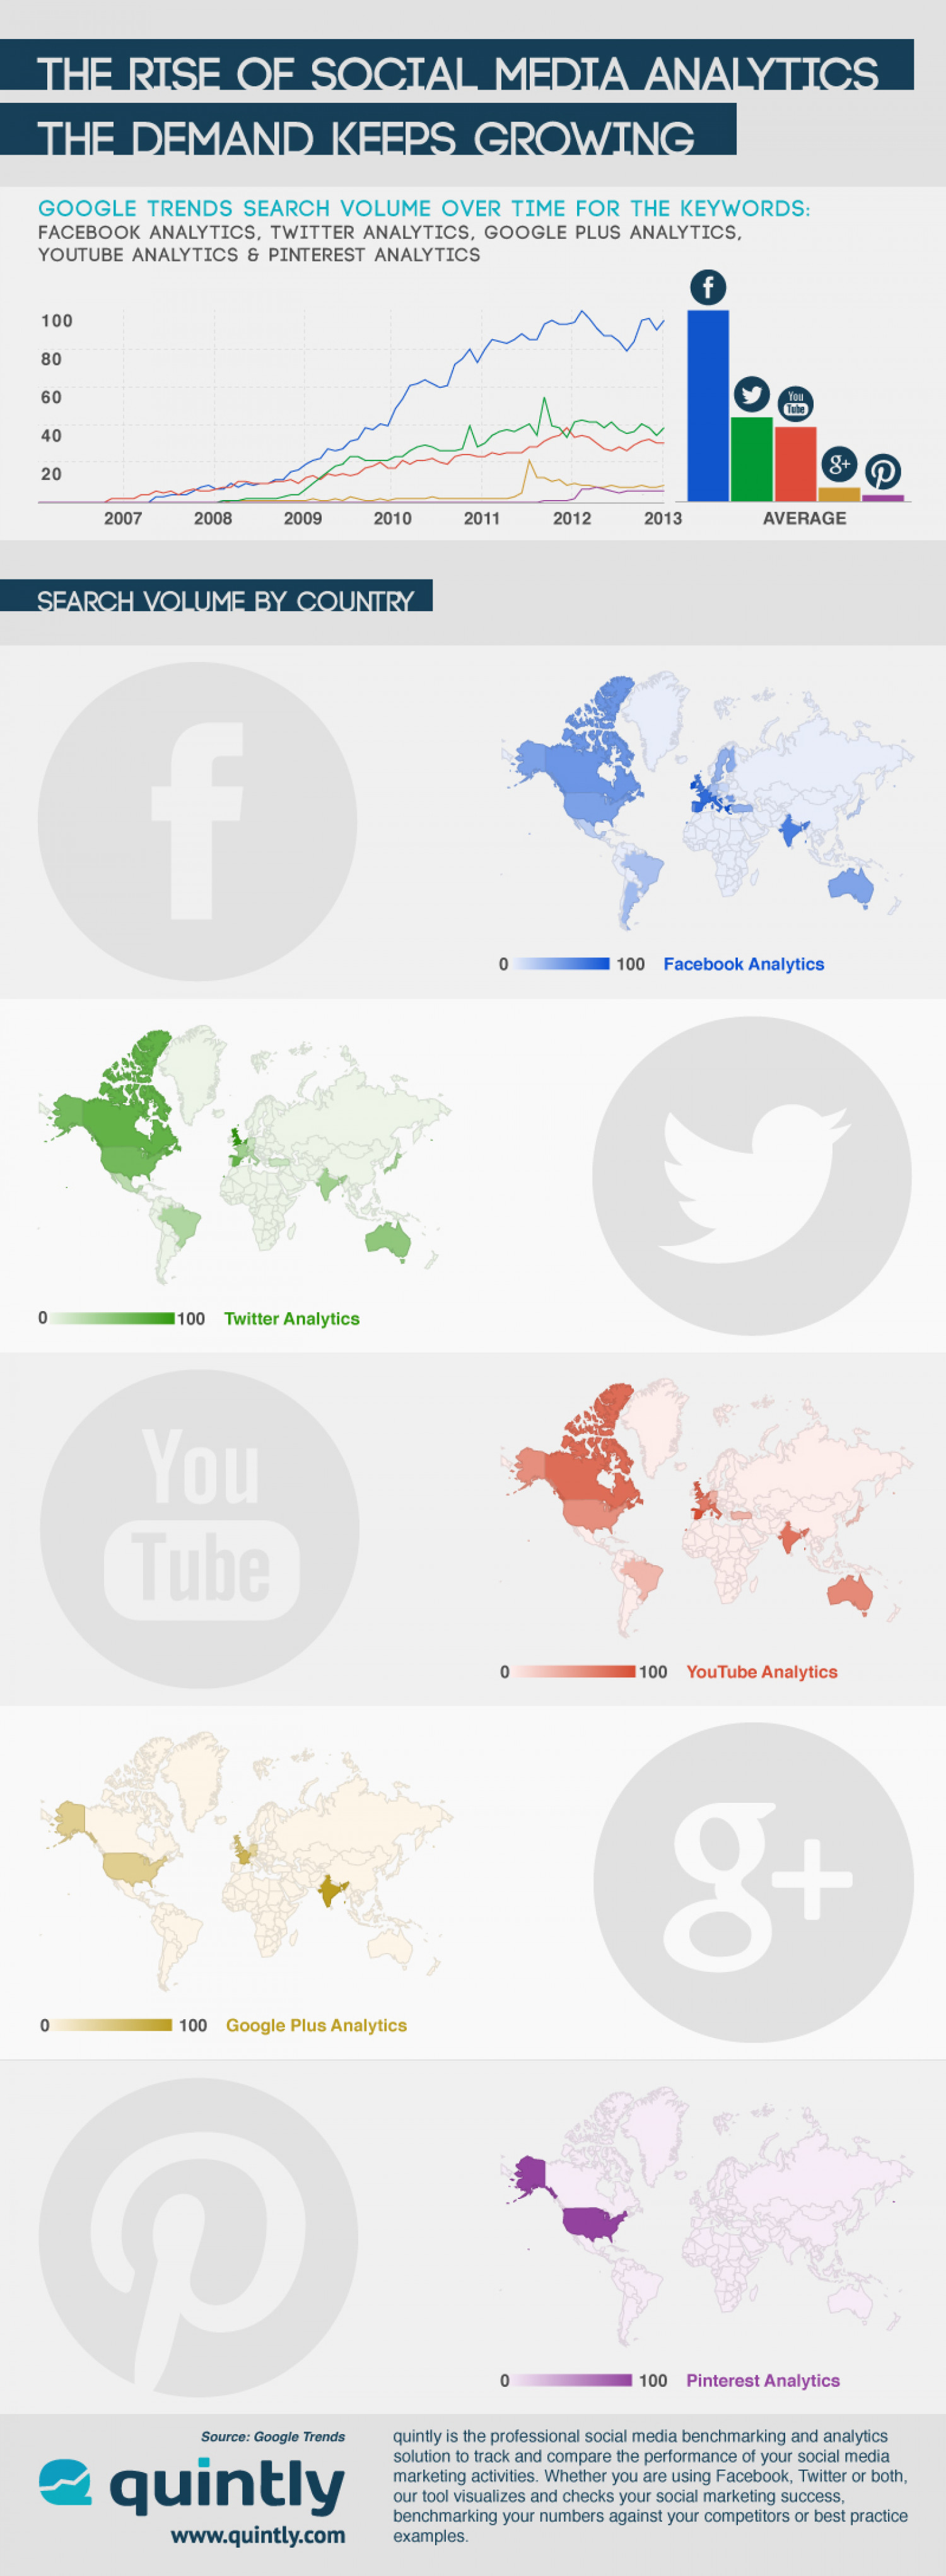 The Rise Of Social Media Analytics, The Demand Keeps Growing Infographic